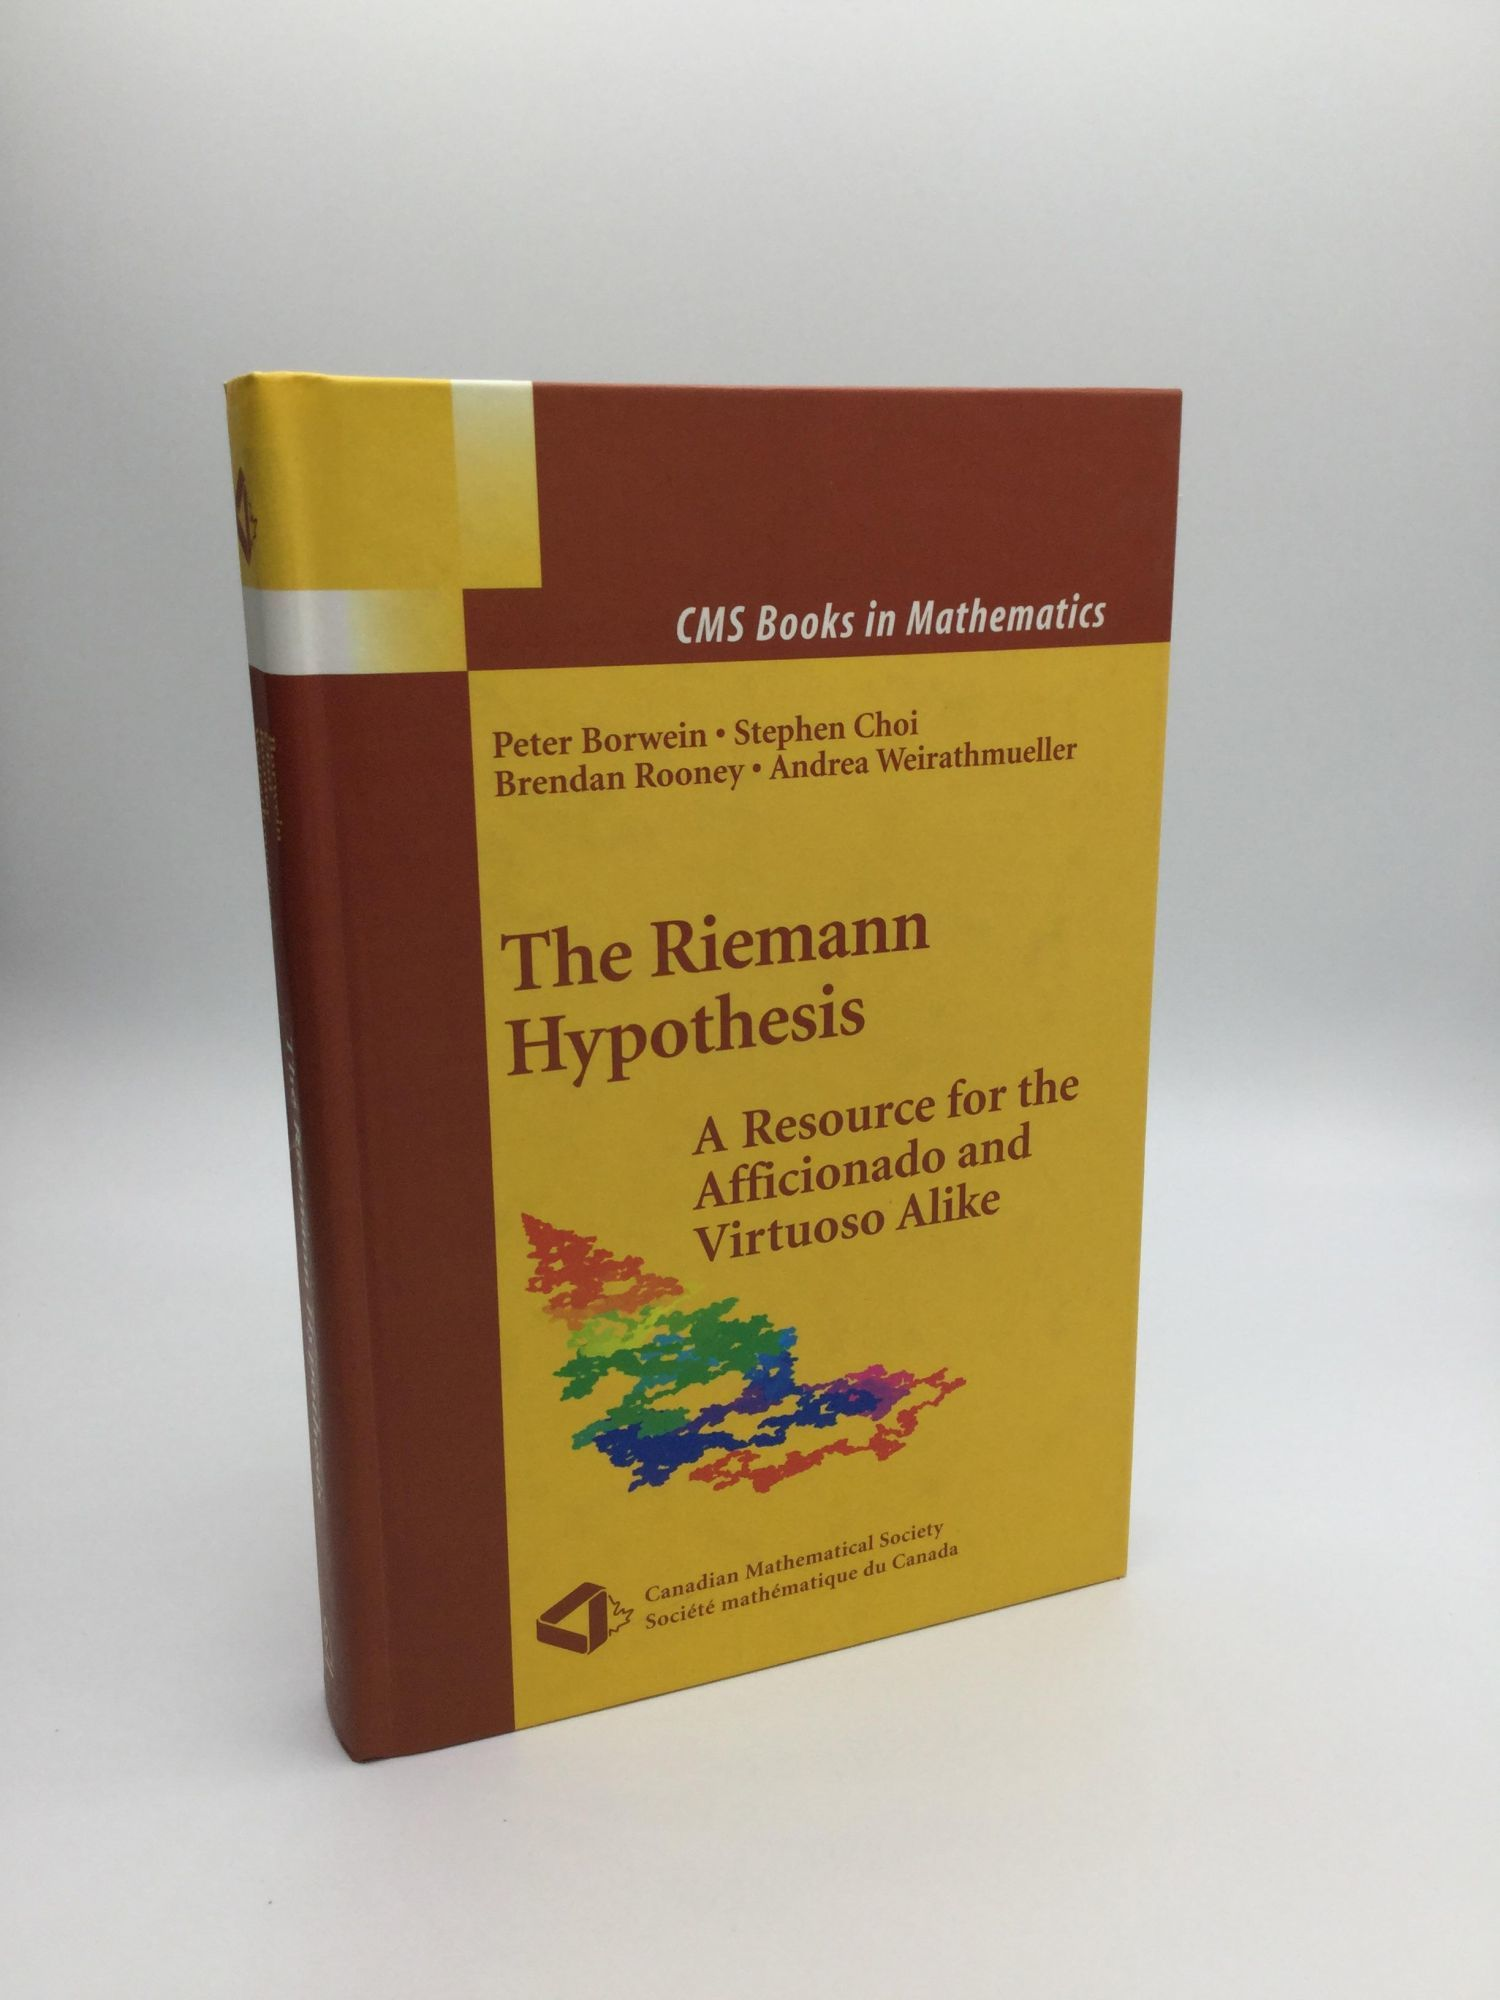 The Riemann Hypothesis: A Resource for the Afficionado and Virtuoso Alike (CMS Books in Mathematics)